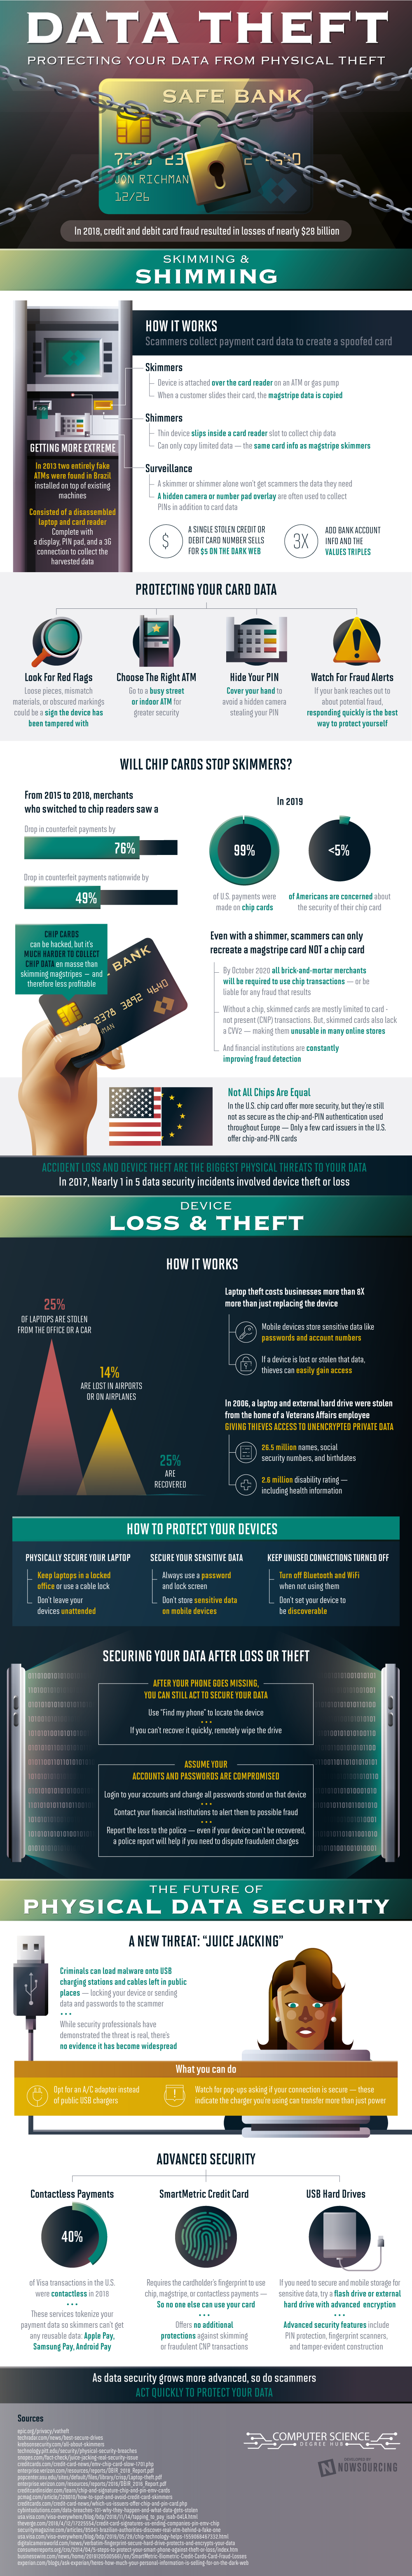 Protect Your Business From Physical Data Theft [Infographic]